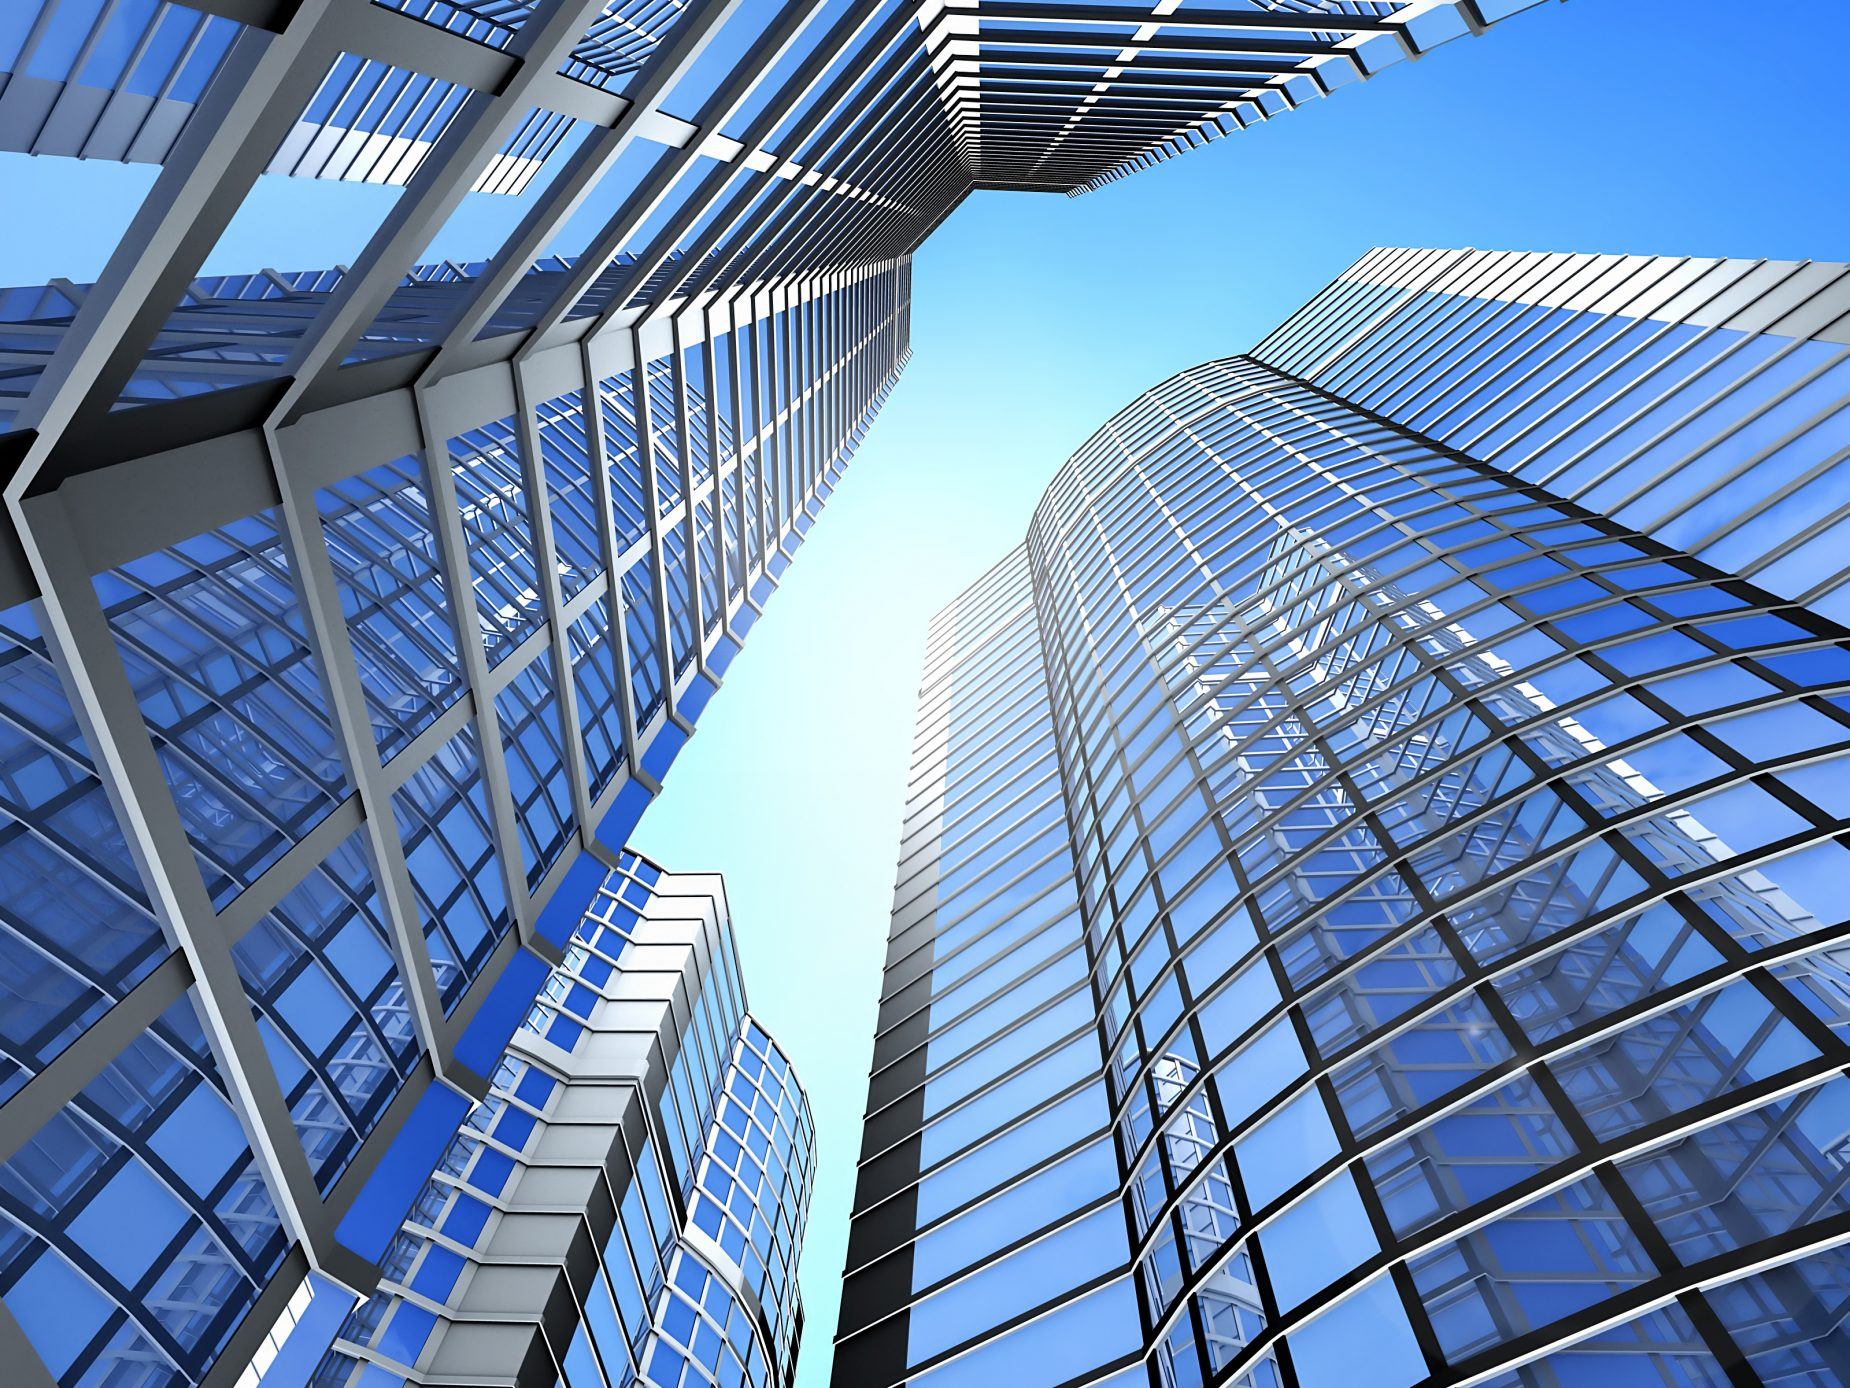 Tall office buildings with a blue sky